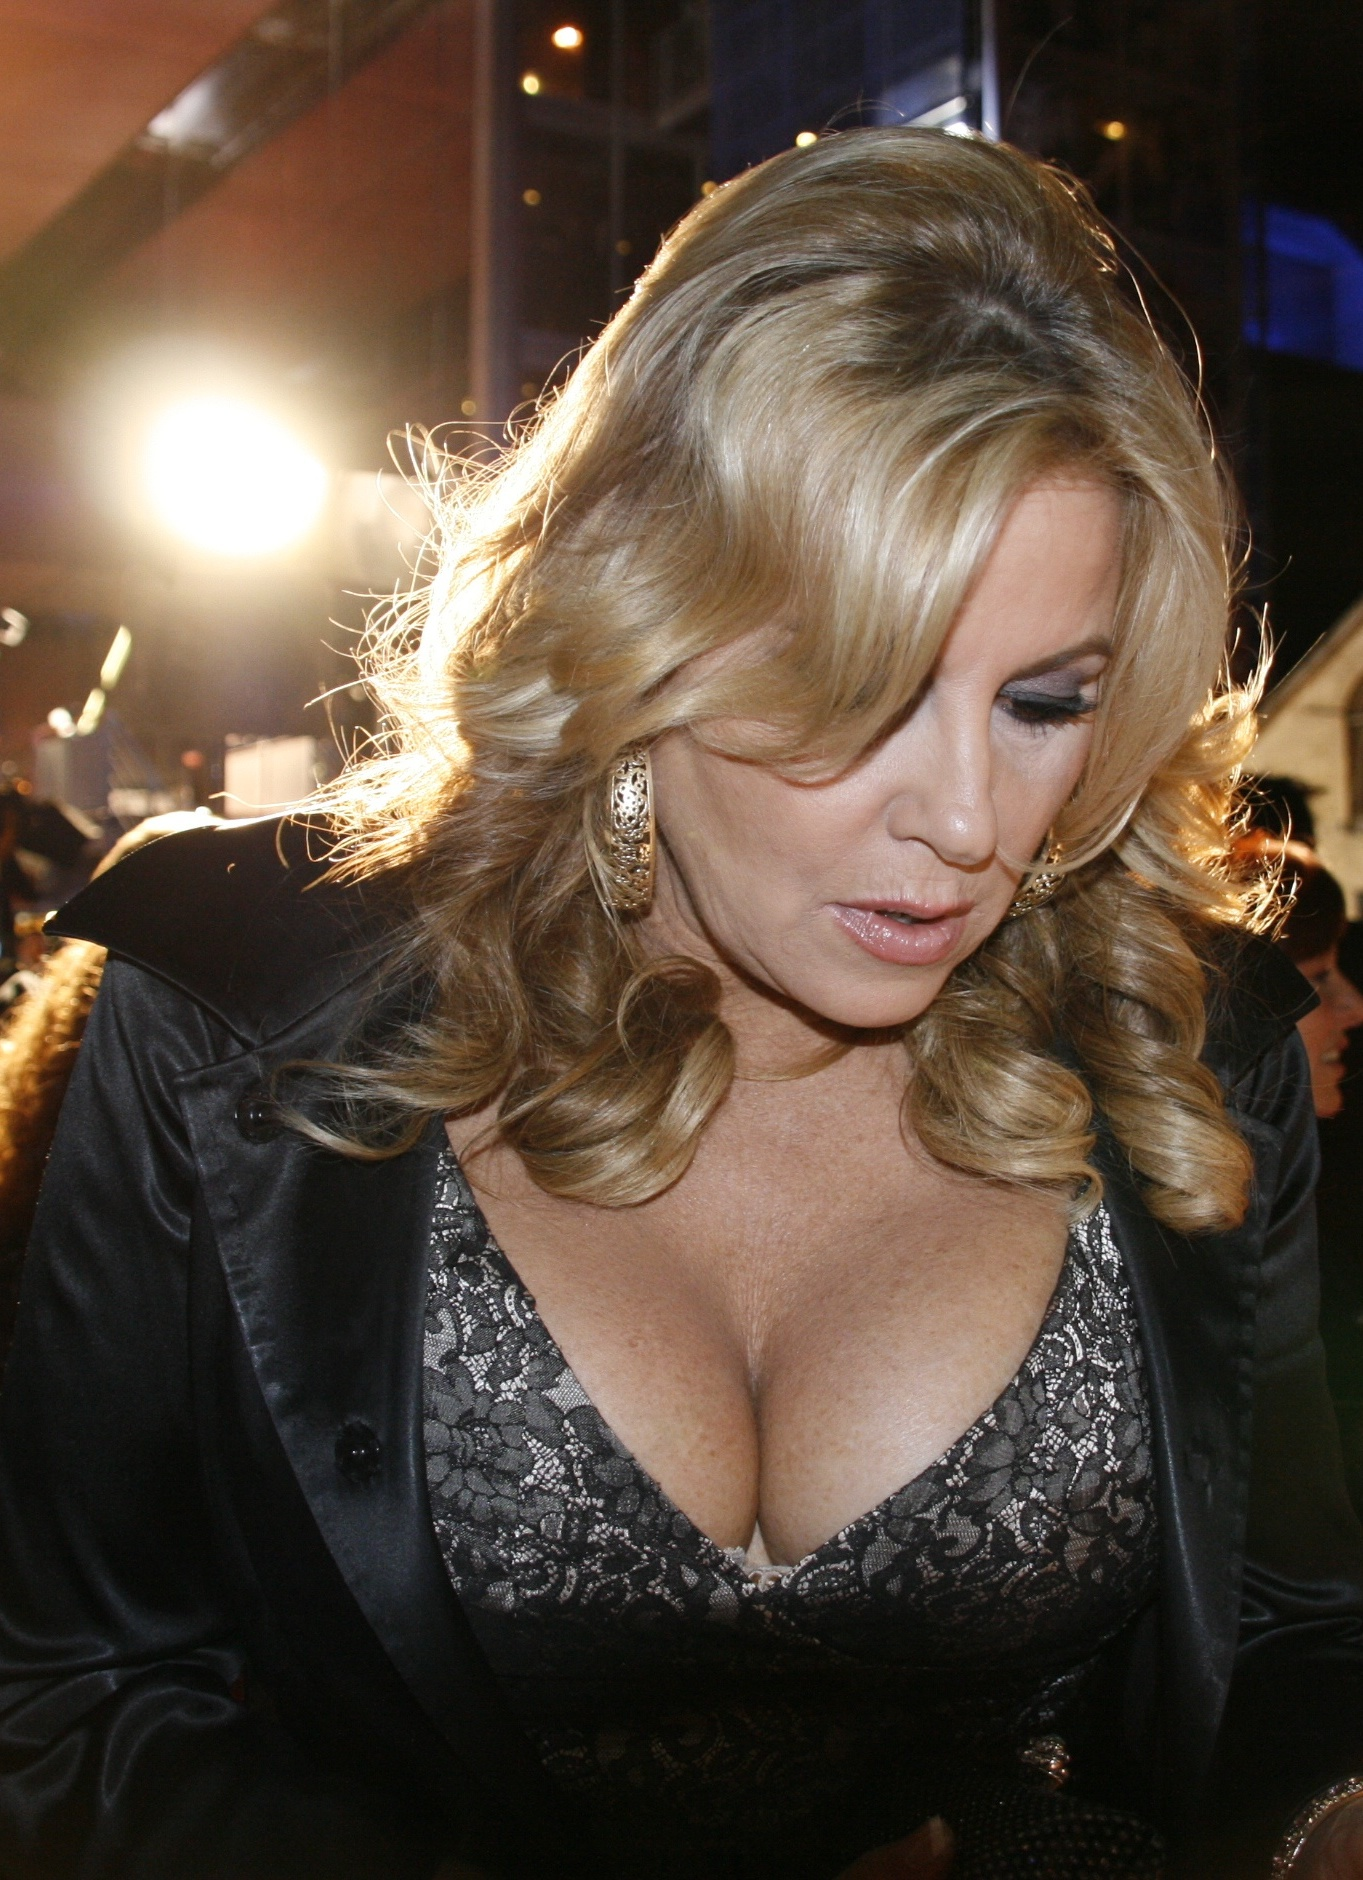 The 56-year old daughter of father (?) and mother(?) Jennifer Coolidge in 2018 photo. Jennifer Coolidge earned a  million dollar salary - leaving the net worth at 10 million in 2018